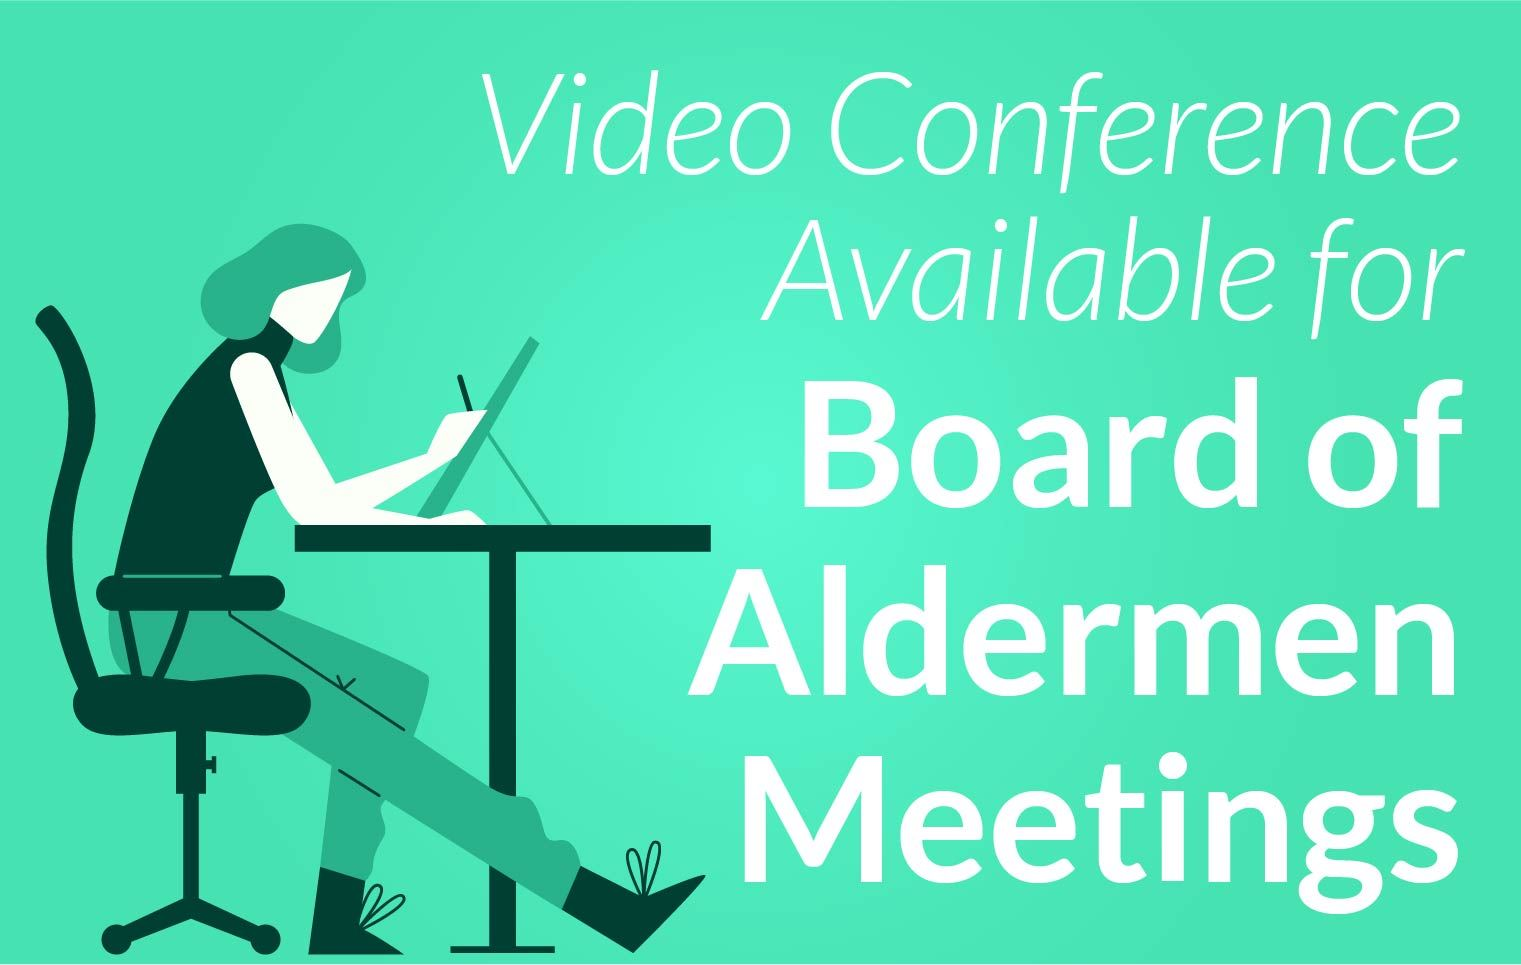 Video Conference Available for Board of Alderman Meetings